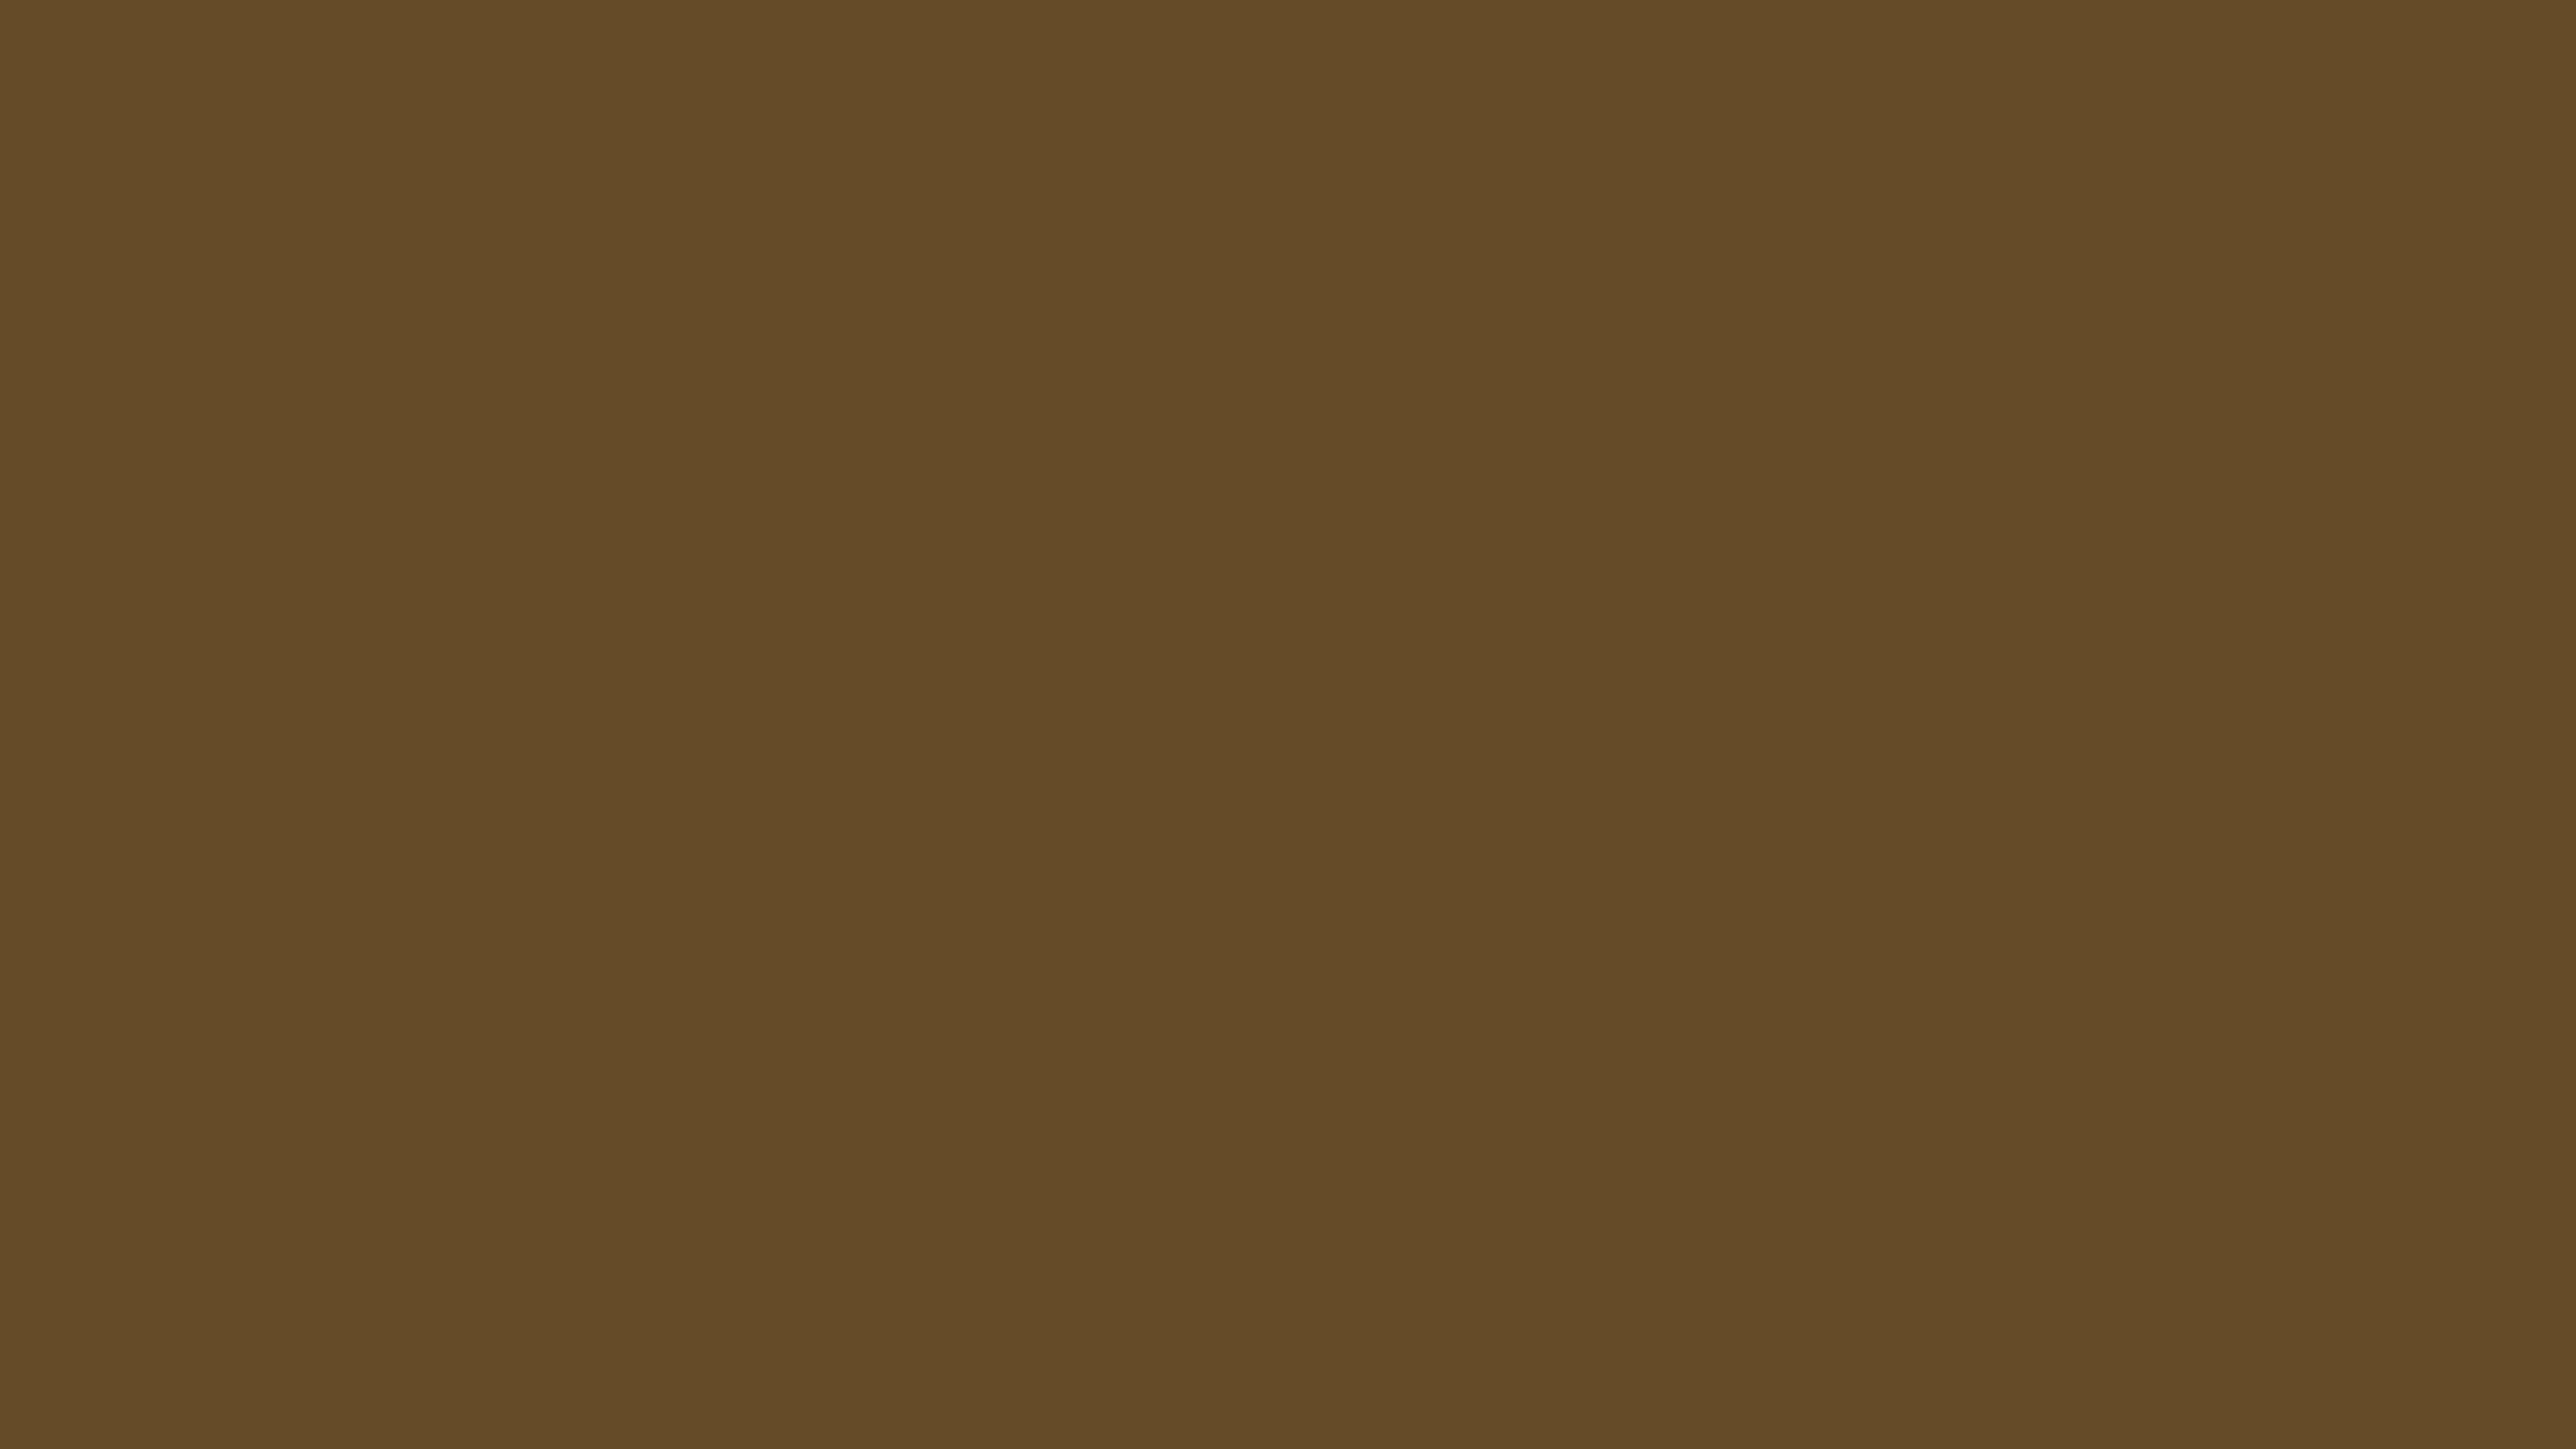 5120x2880 Donkey Brown Solid Color Background